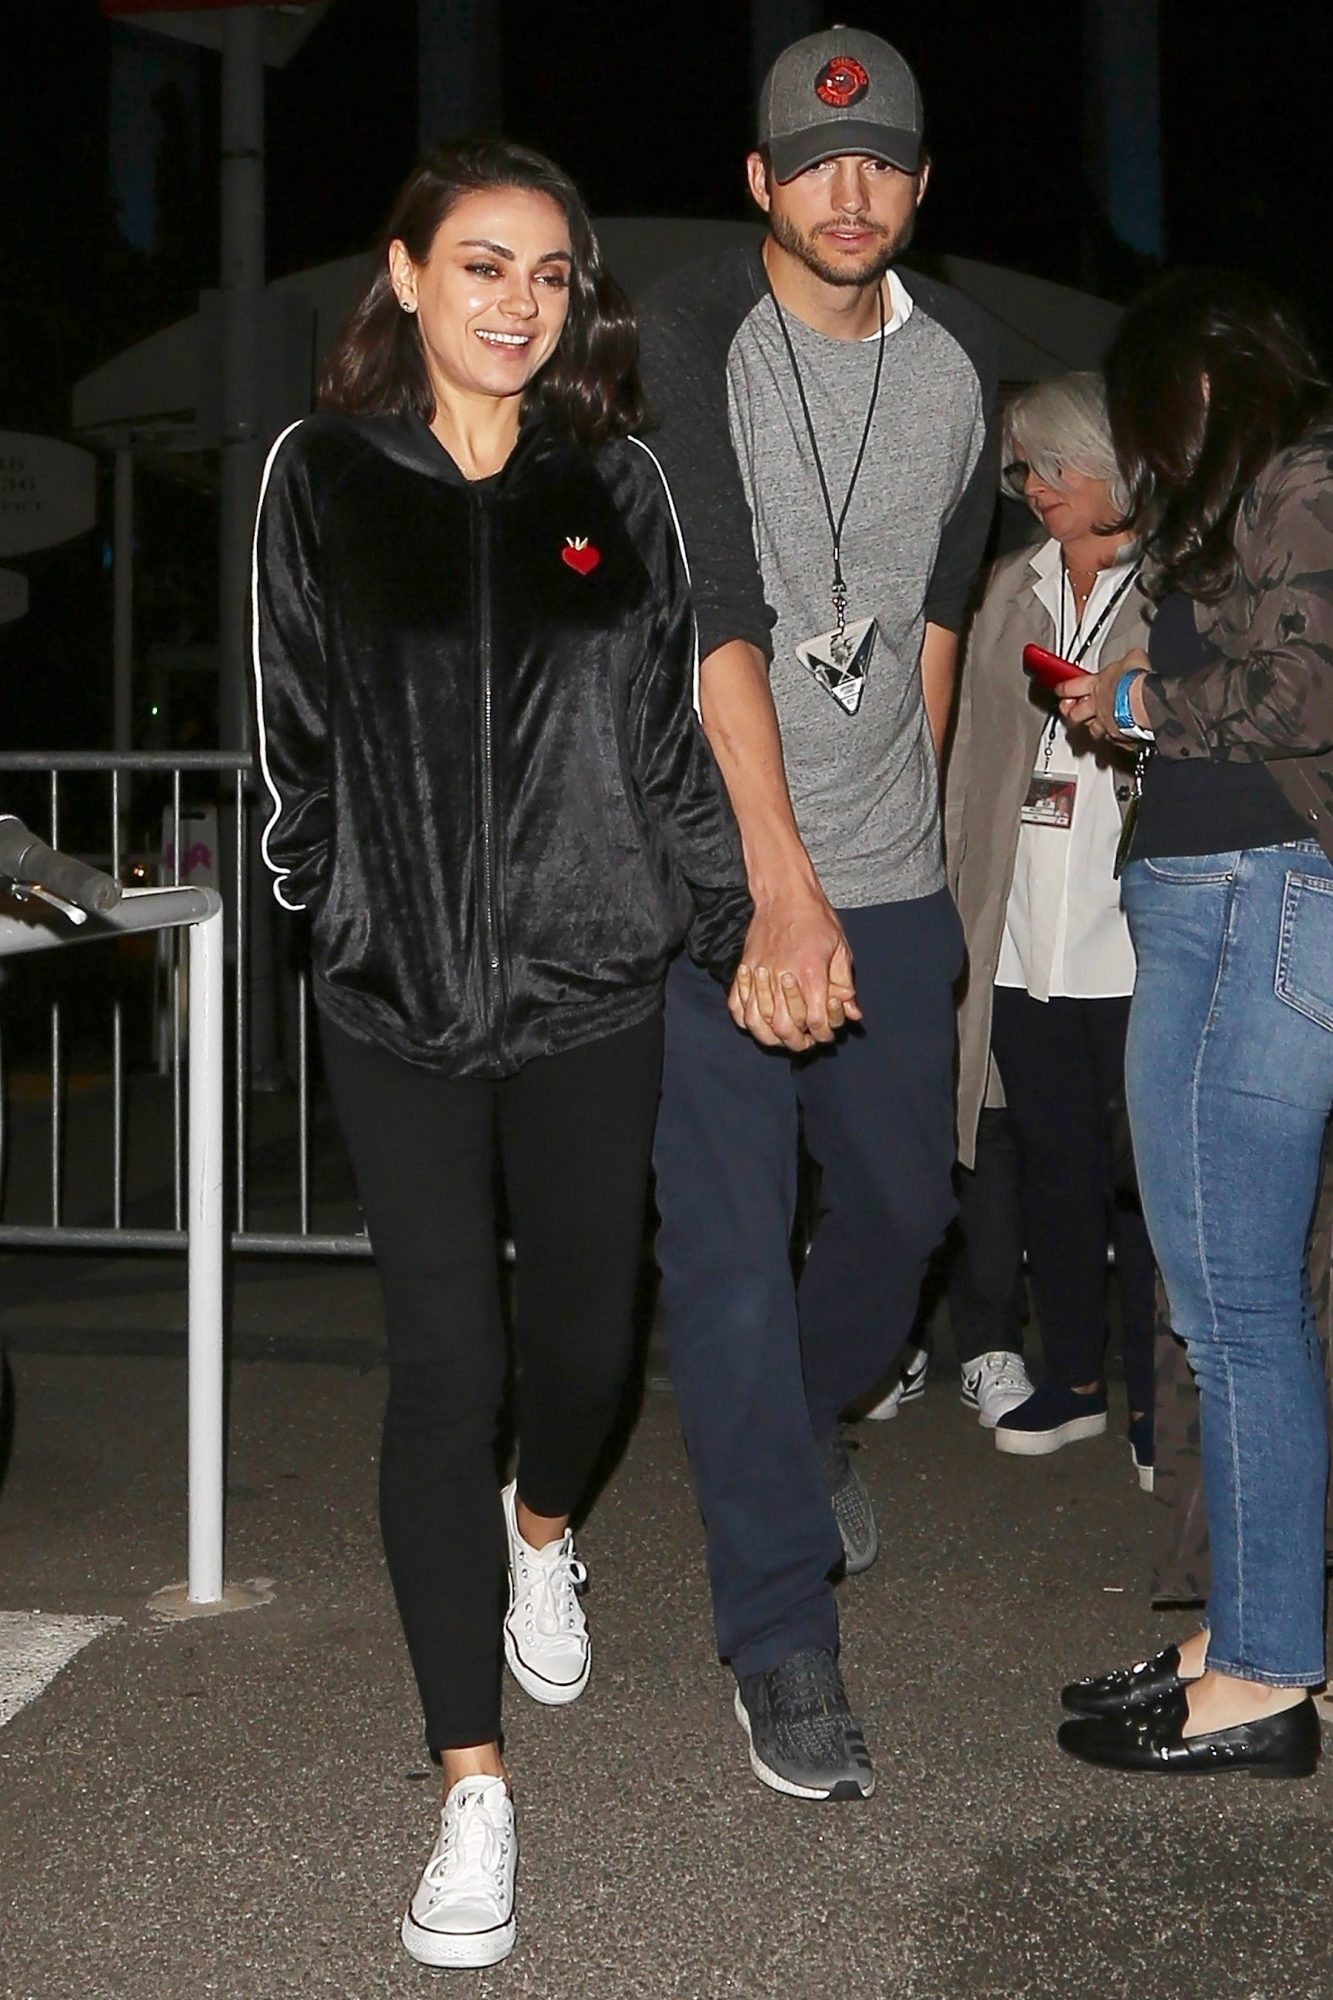 Mila Kunis and Ashton Kutcher have date night at the U2 Concert